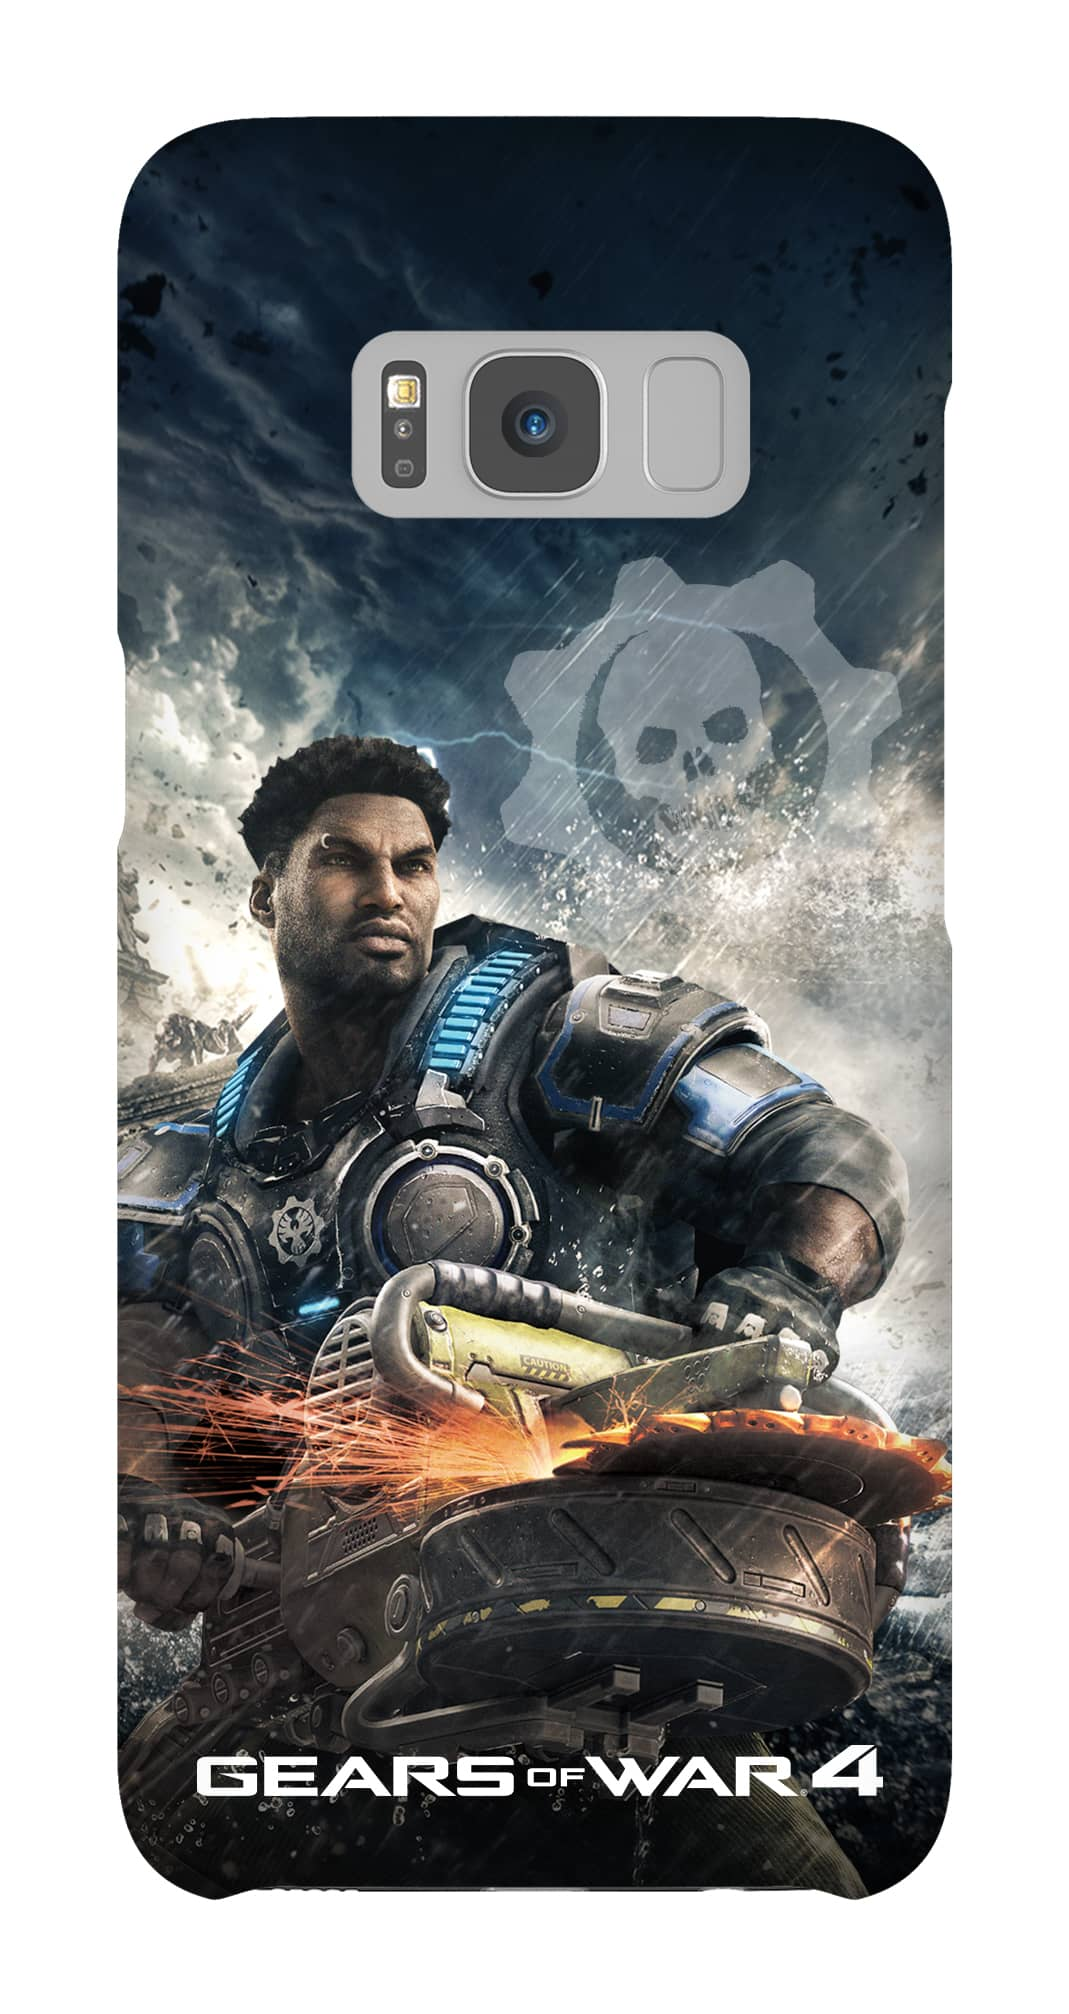 Gears of War 4 Samsung Galaxy S8 phone case Del Buzz Kill